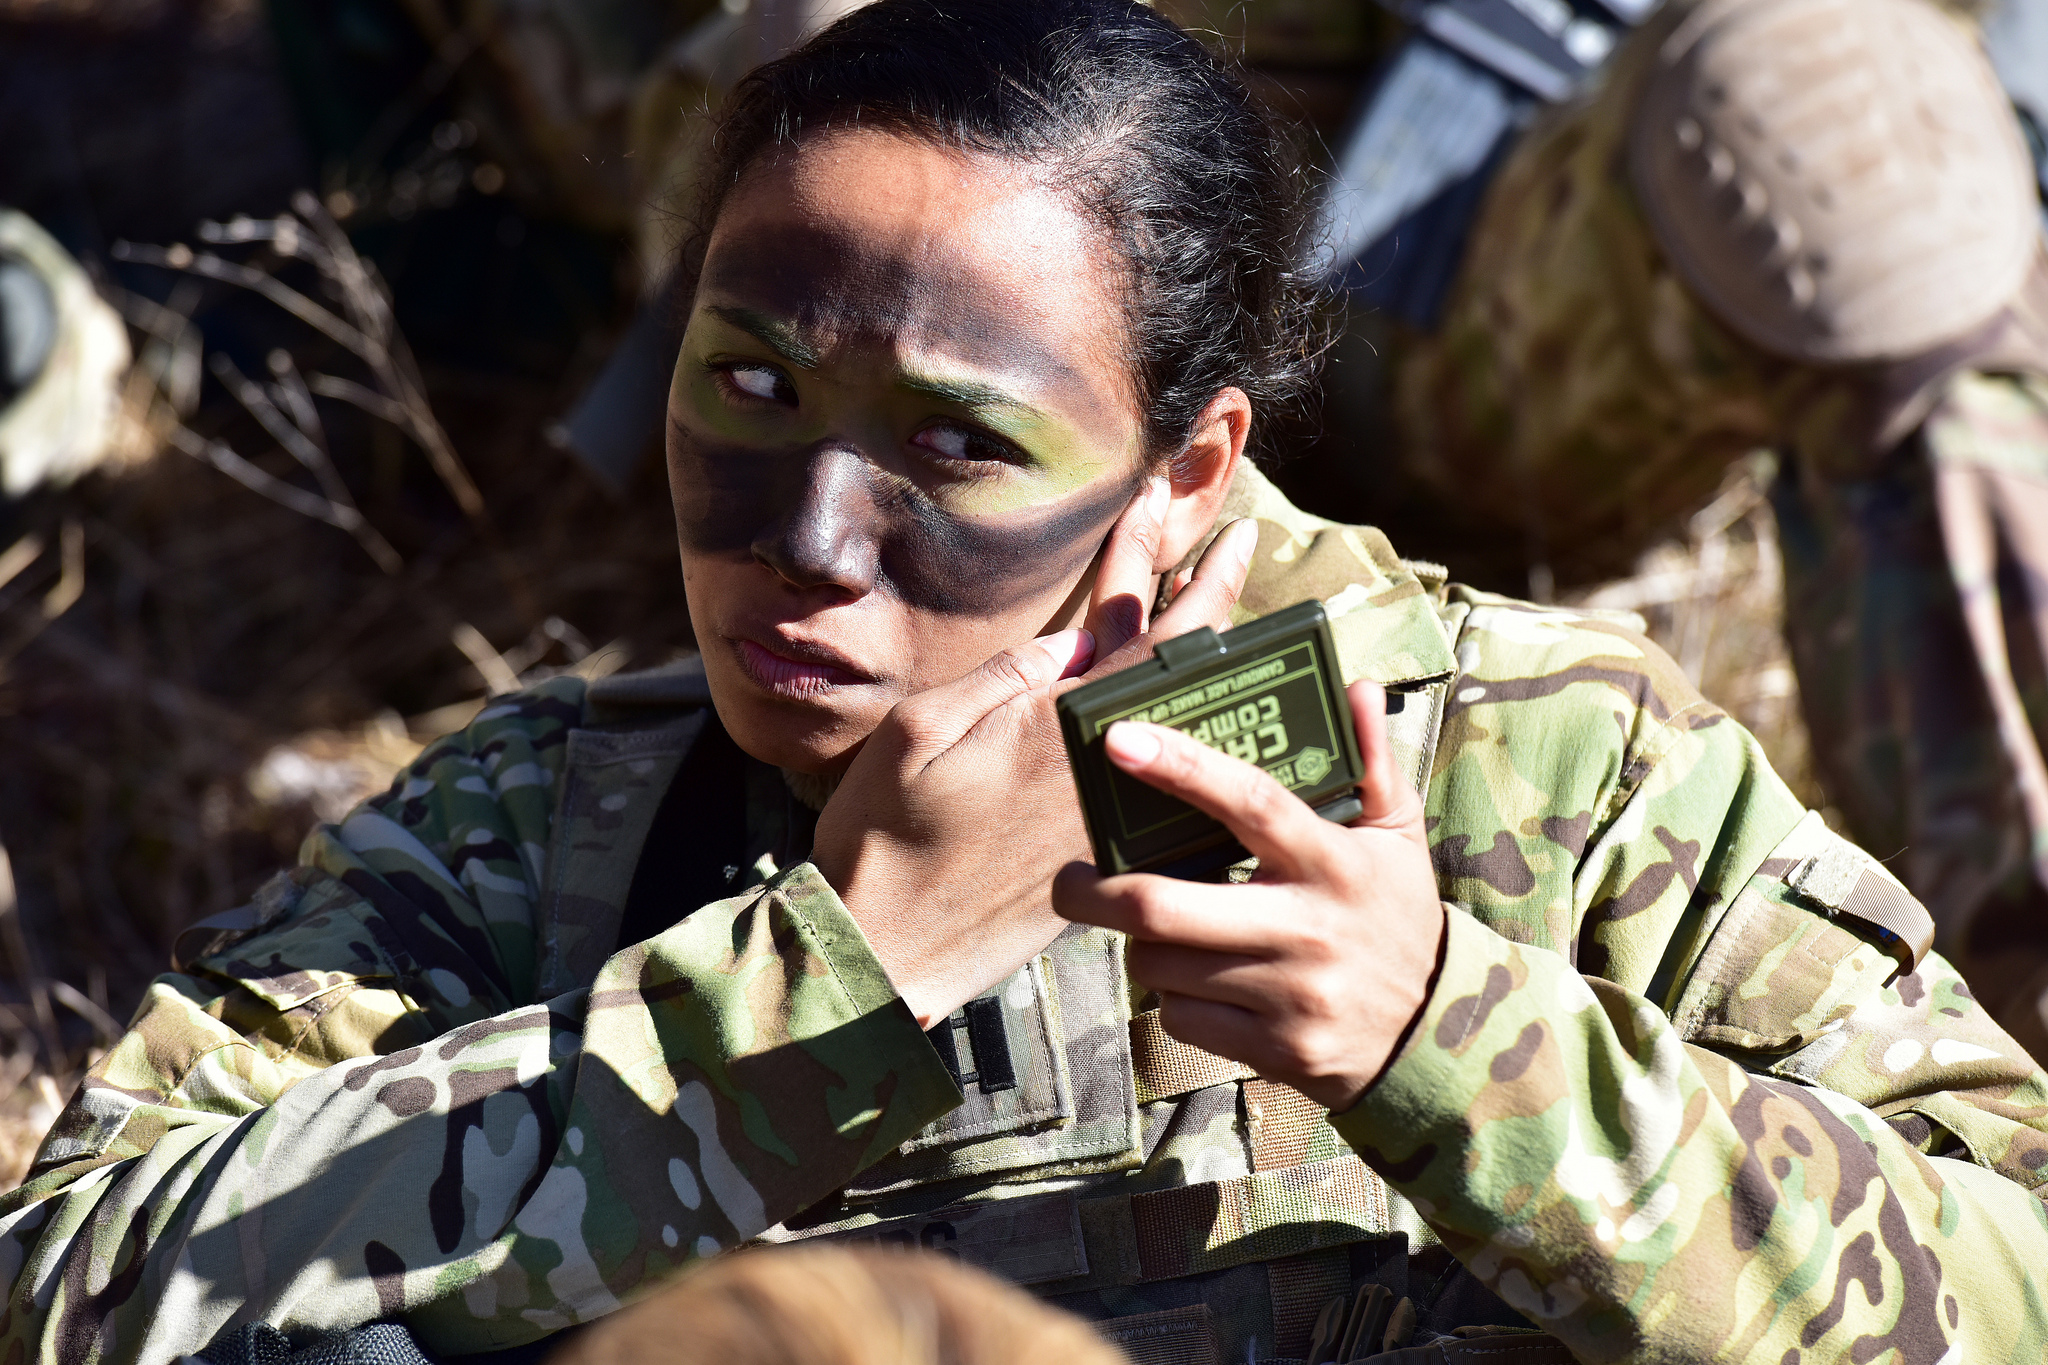 Capt. Julissa Myers puts the finishing touches to her face paint camouflage in preparation a blank-fire exercise as part of Lipizzaner V at Pocek Range in Postonja, Slovenia, March 12, 2019. (Paolo Bovo/Army)